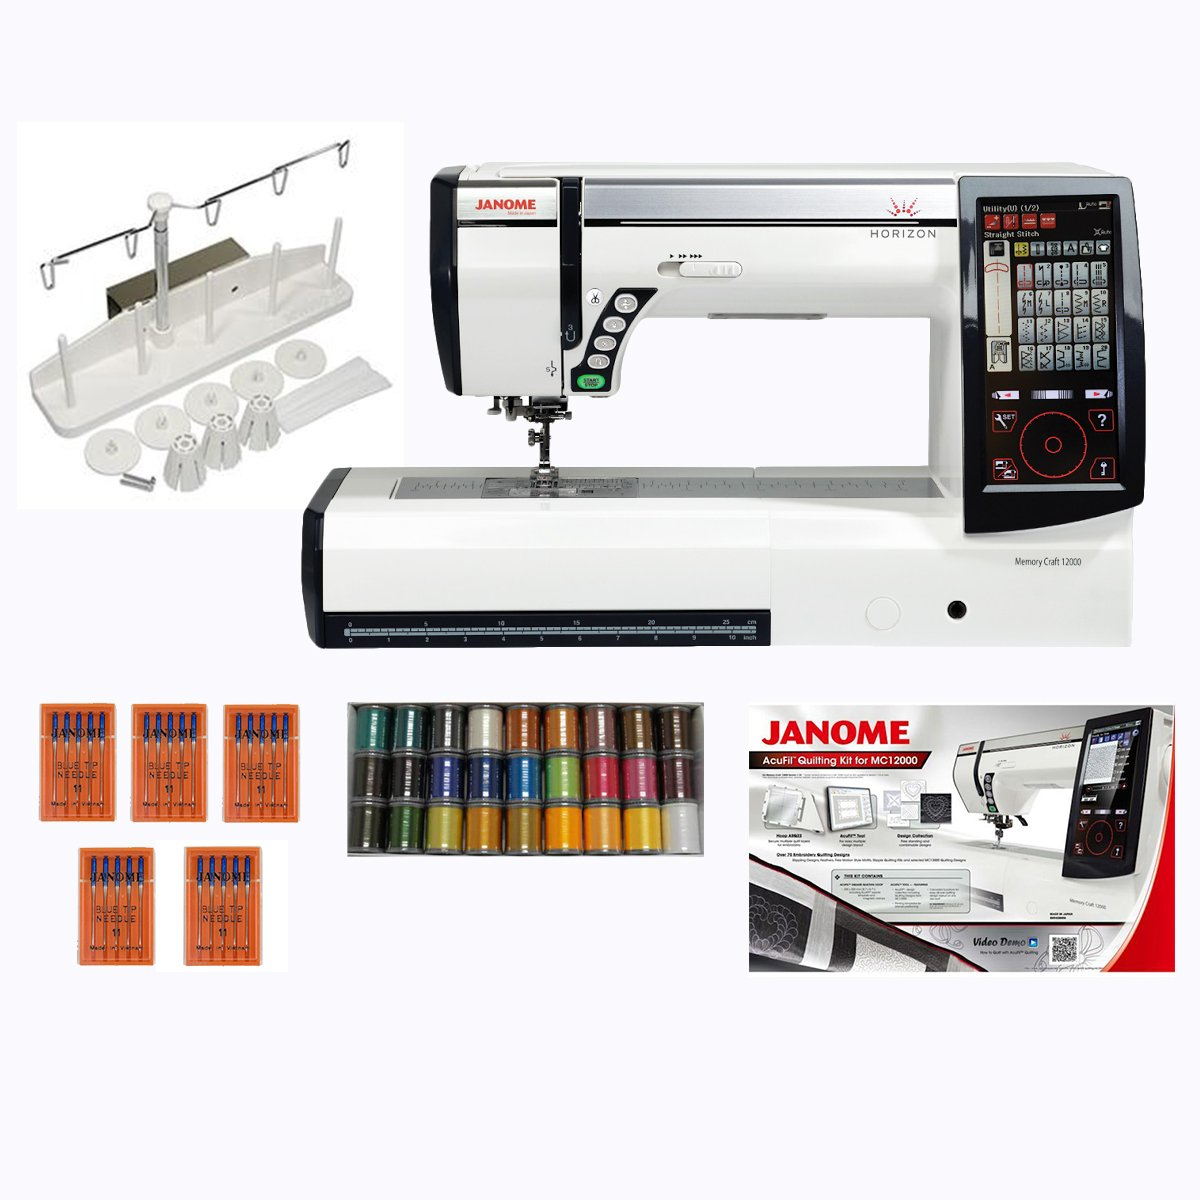 Janome memory craft 12000 - Amazon Com Janome Horizon Memory 12000 Embroidery With Sewing Machine And Accessories